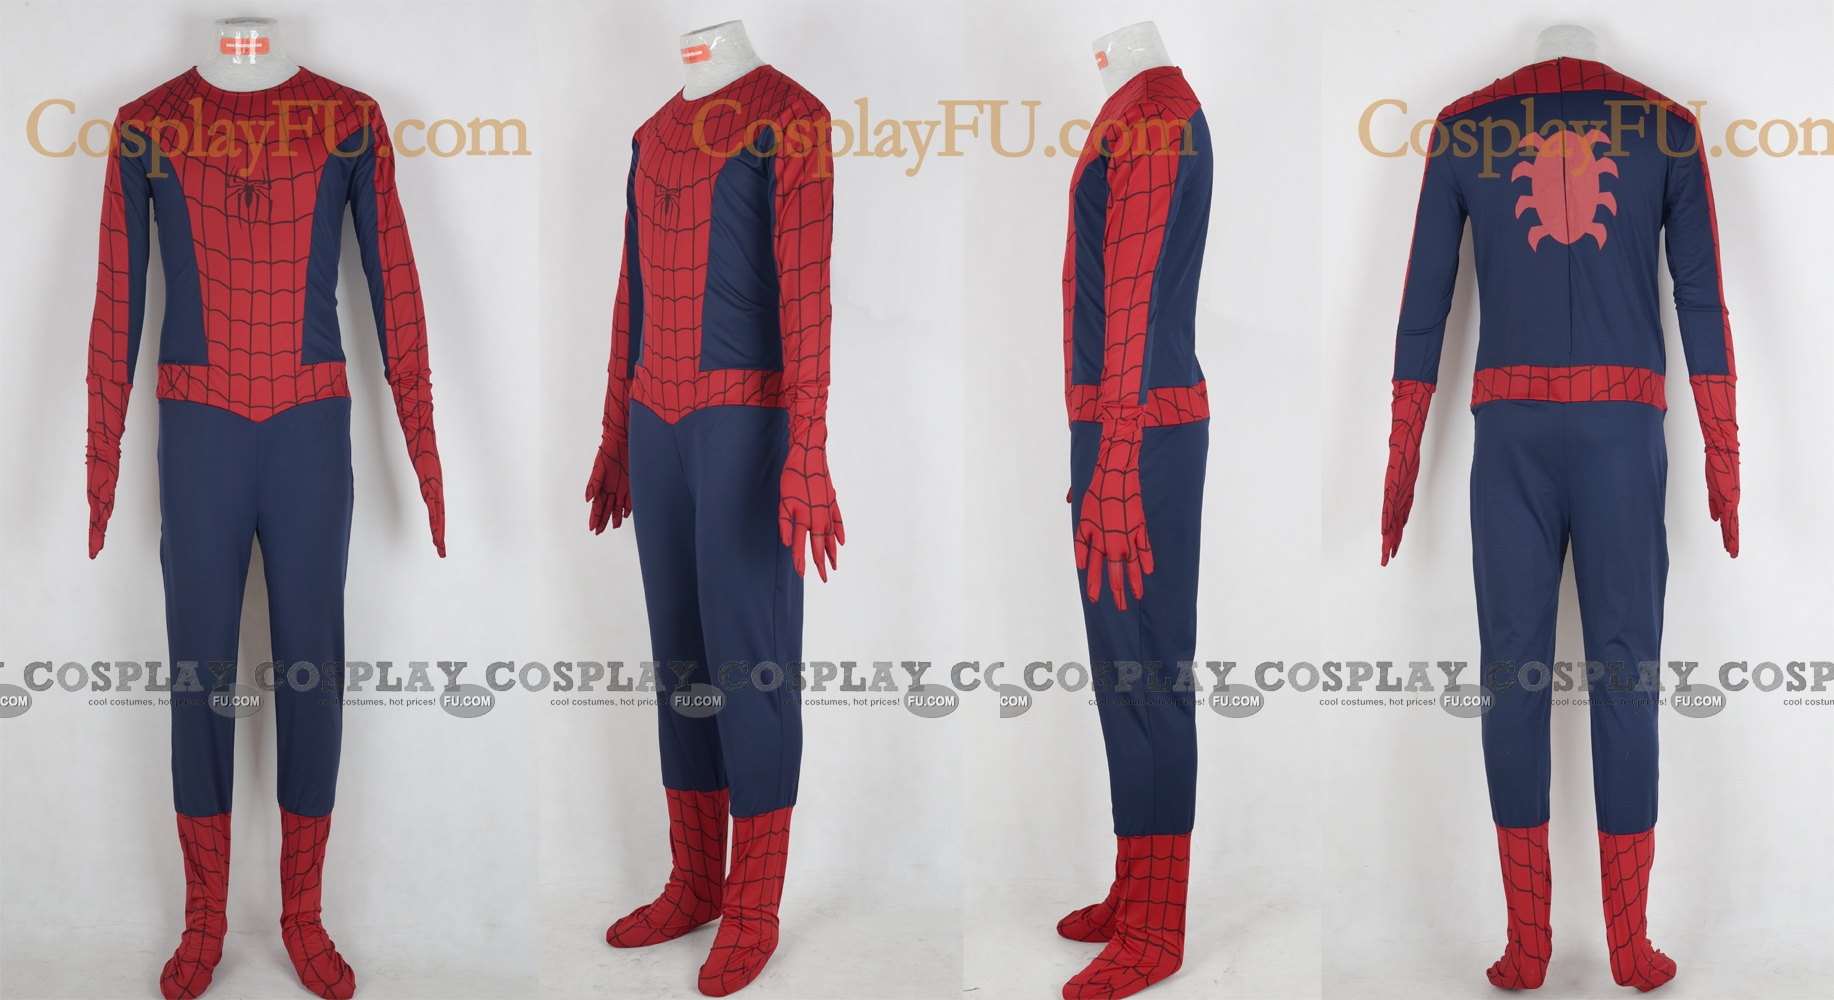 Spider Man Cosplay Costume from Spider Man